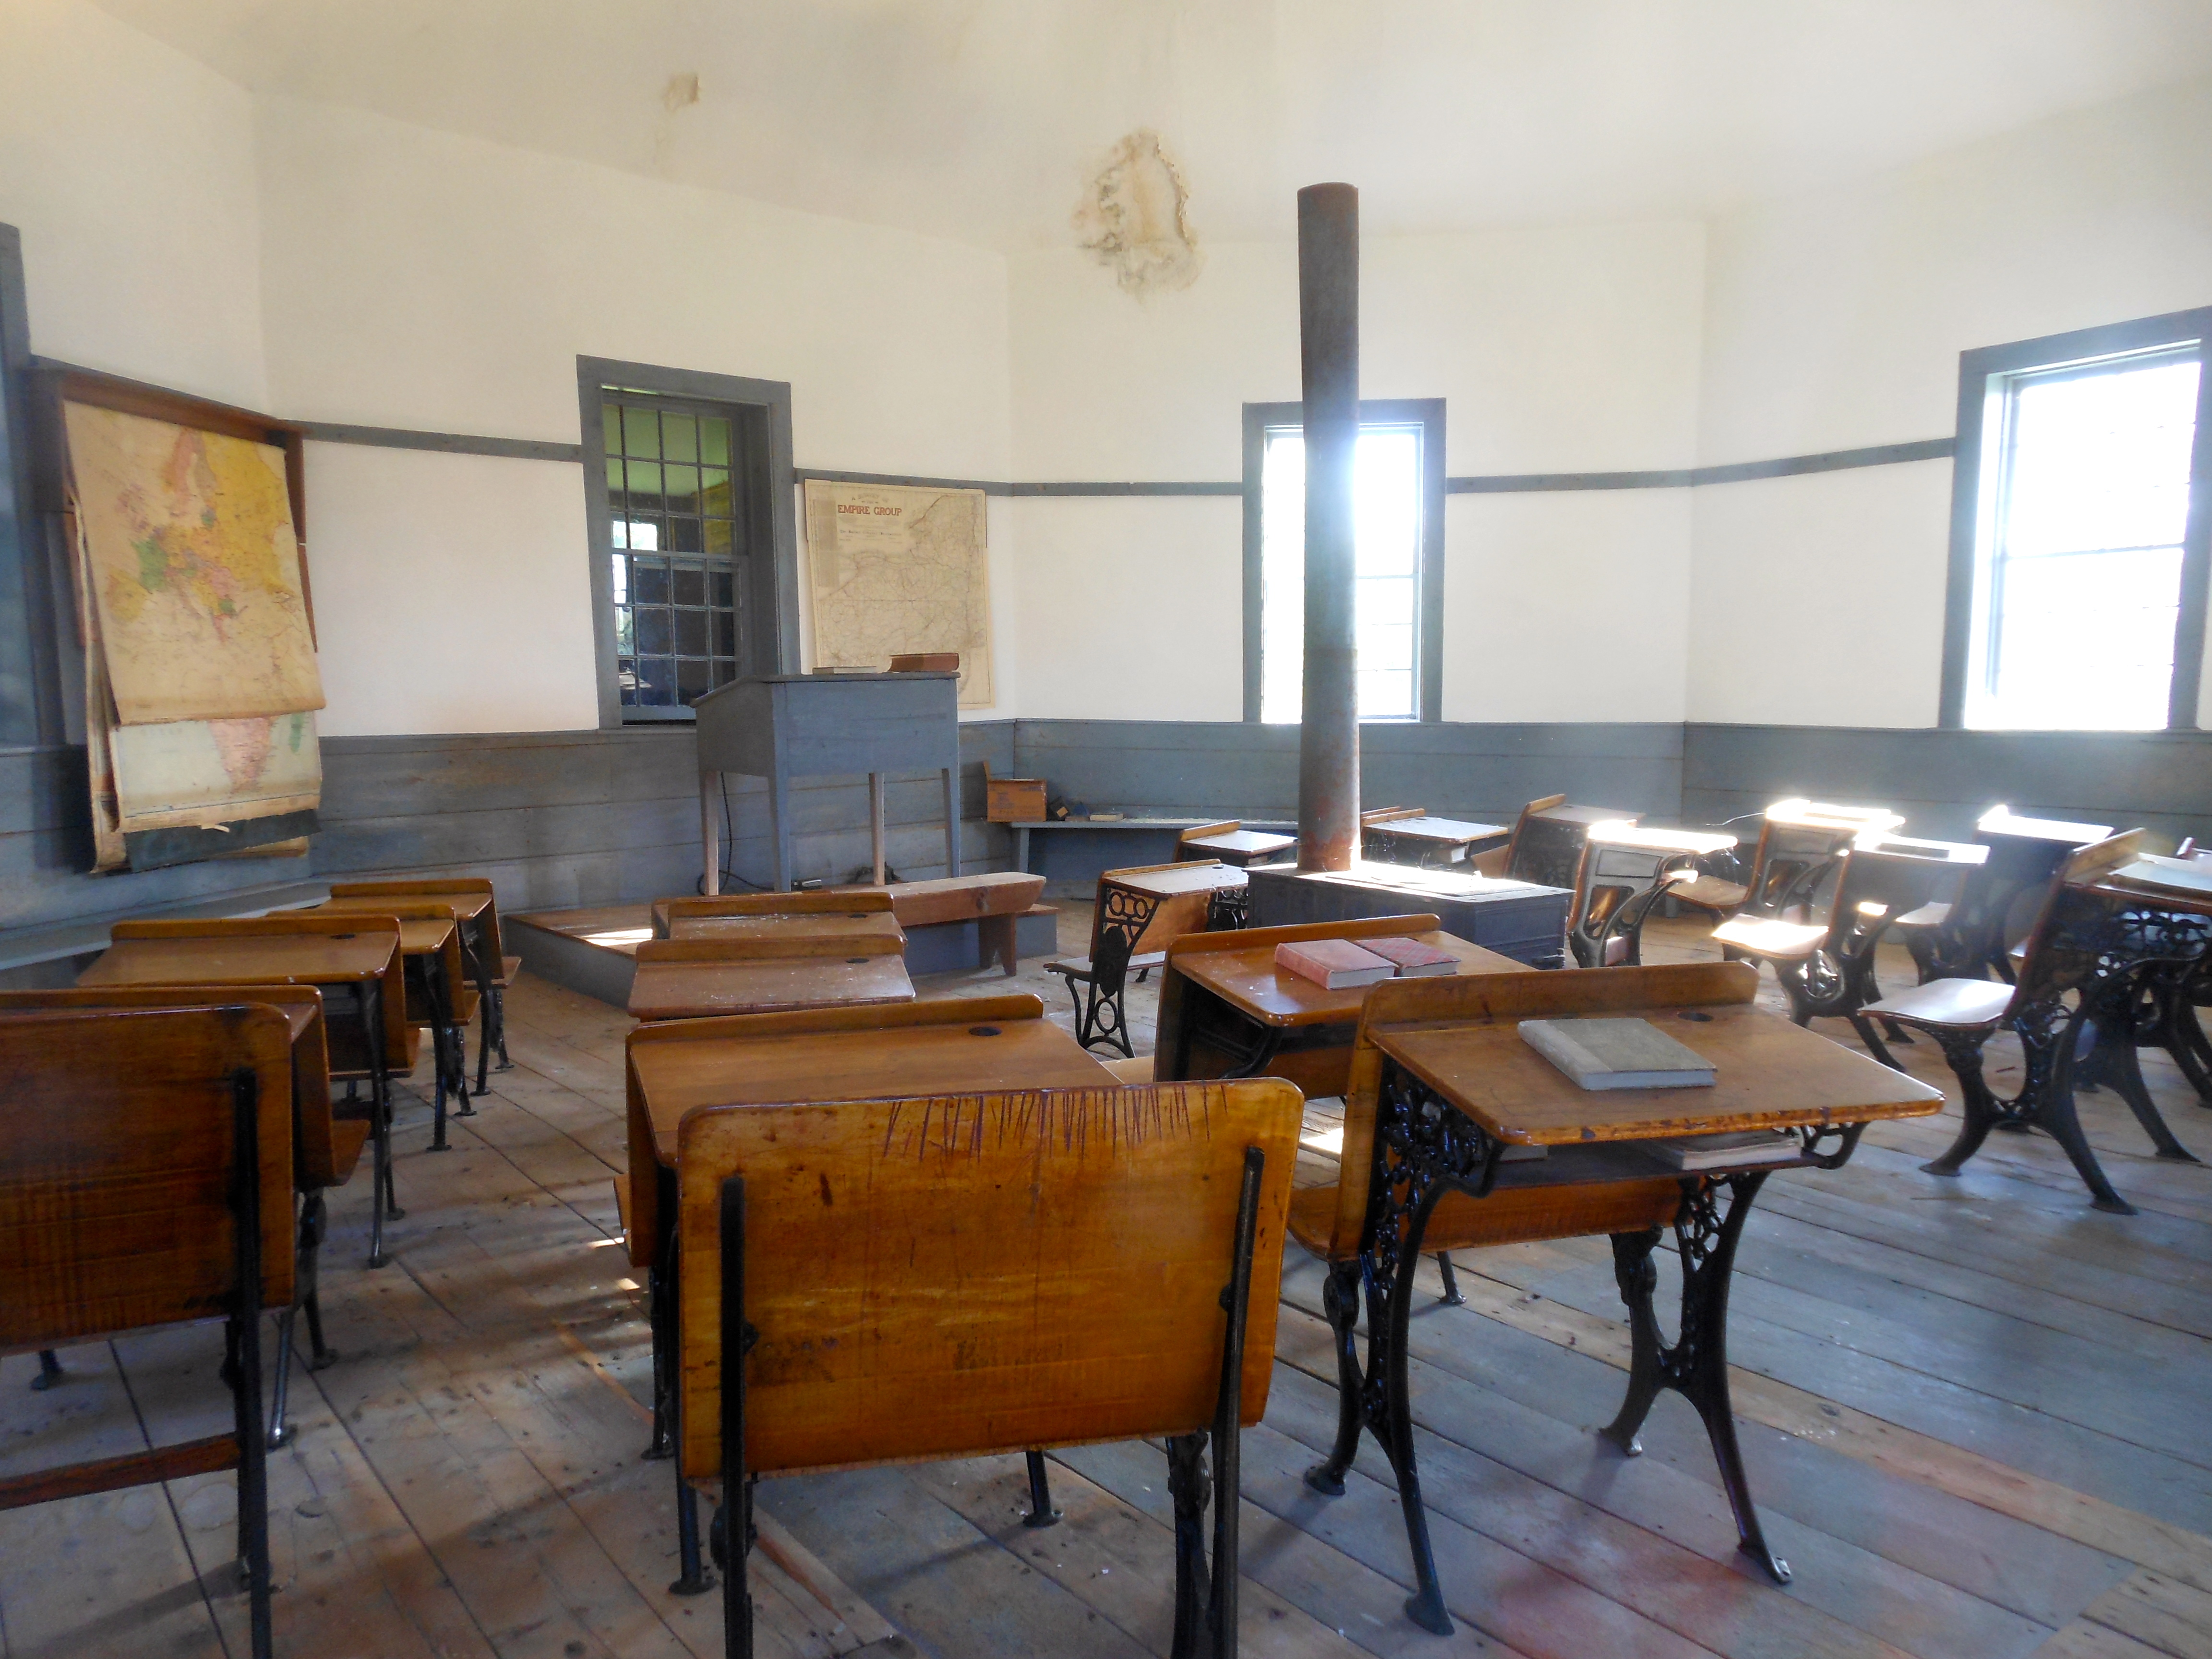 File The One Room Classroom Inside The Octagonal